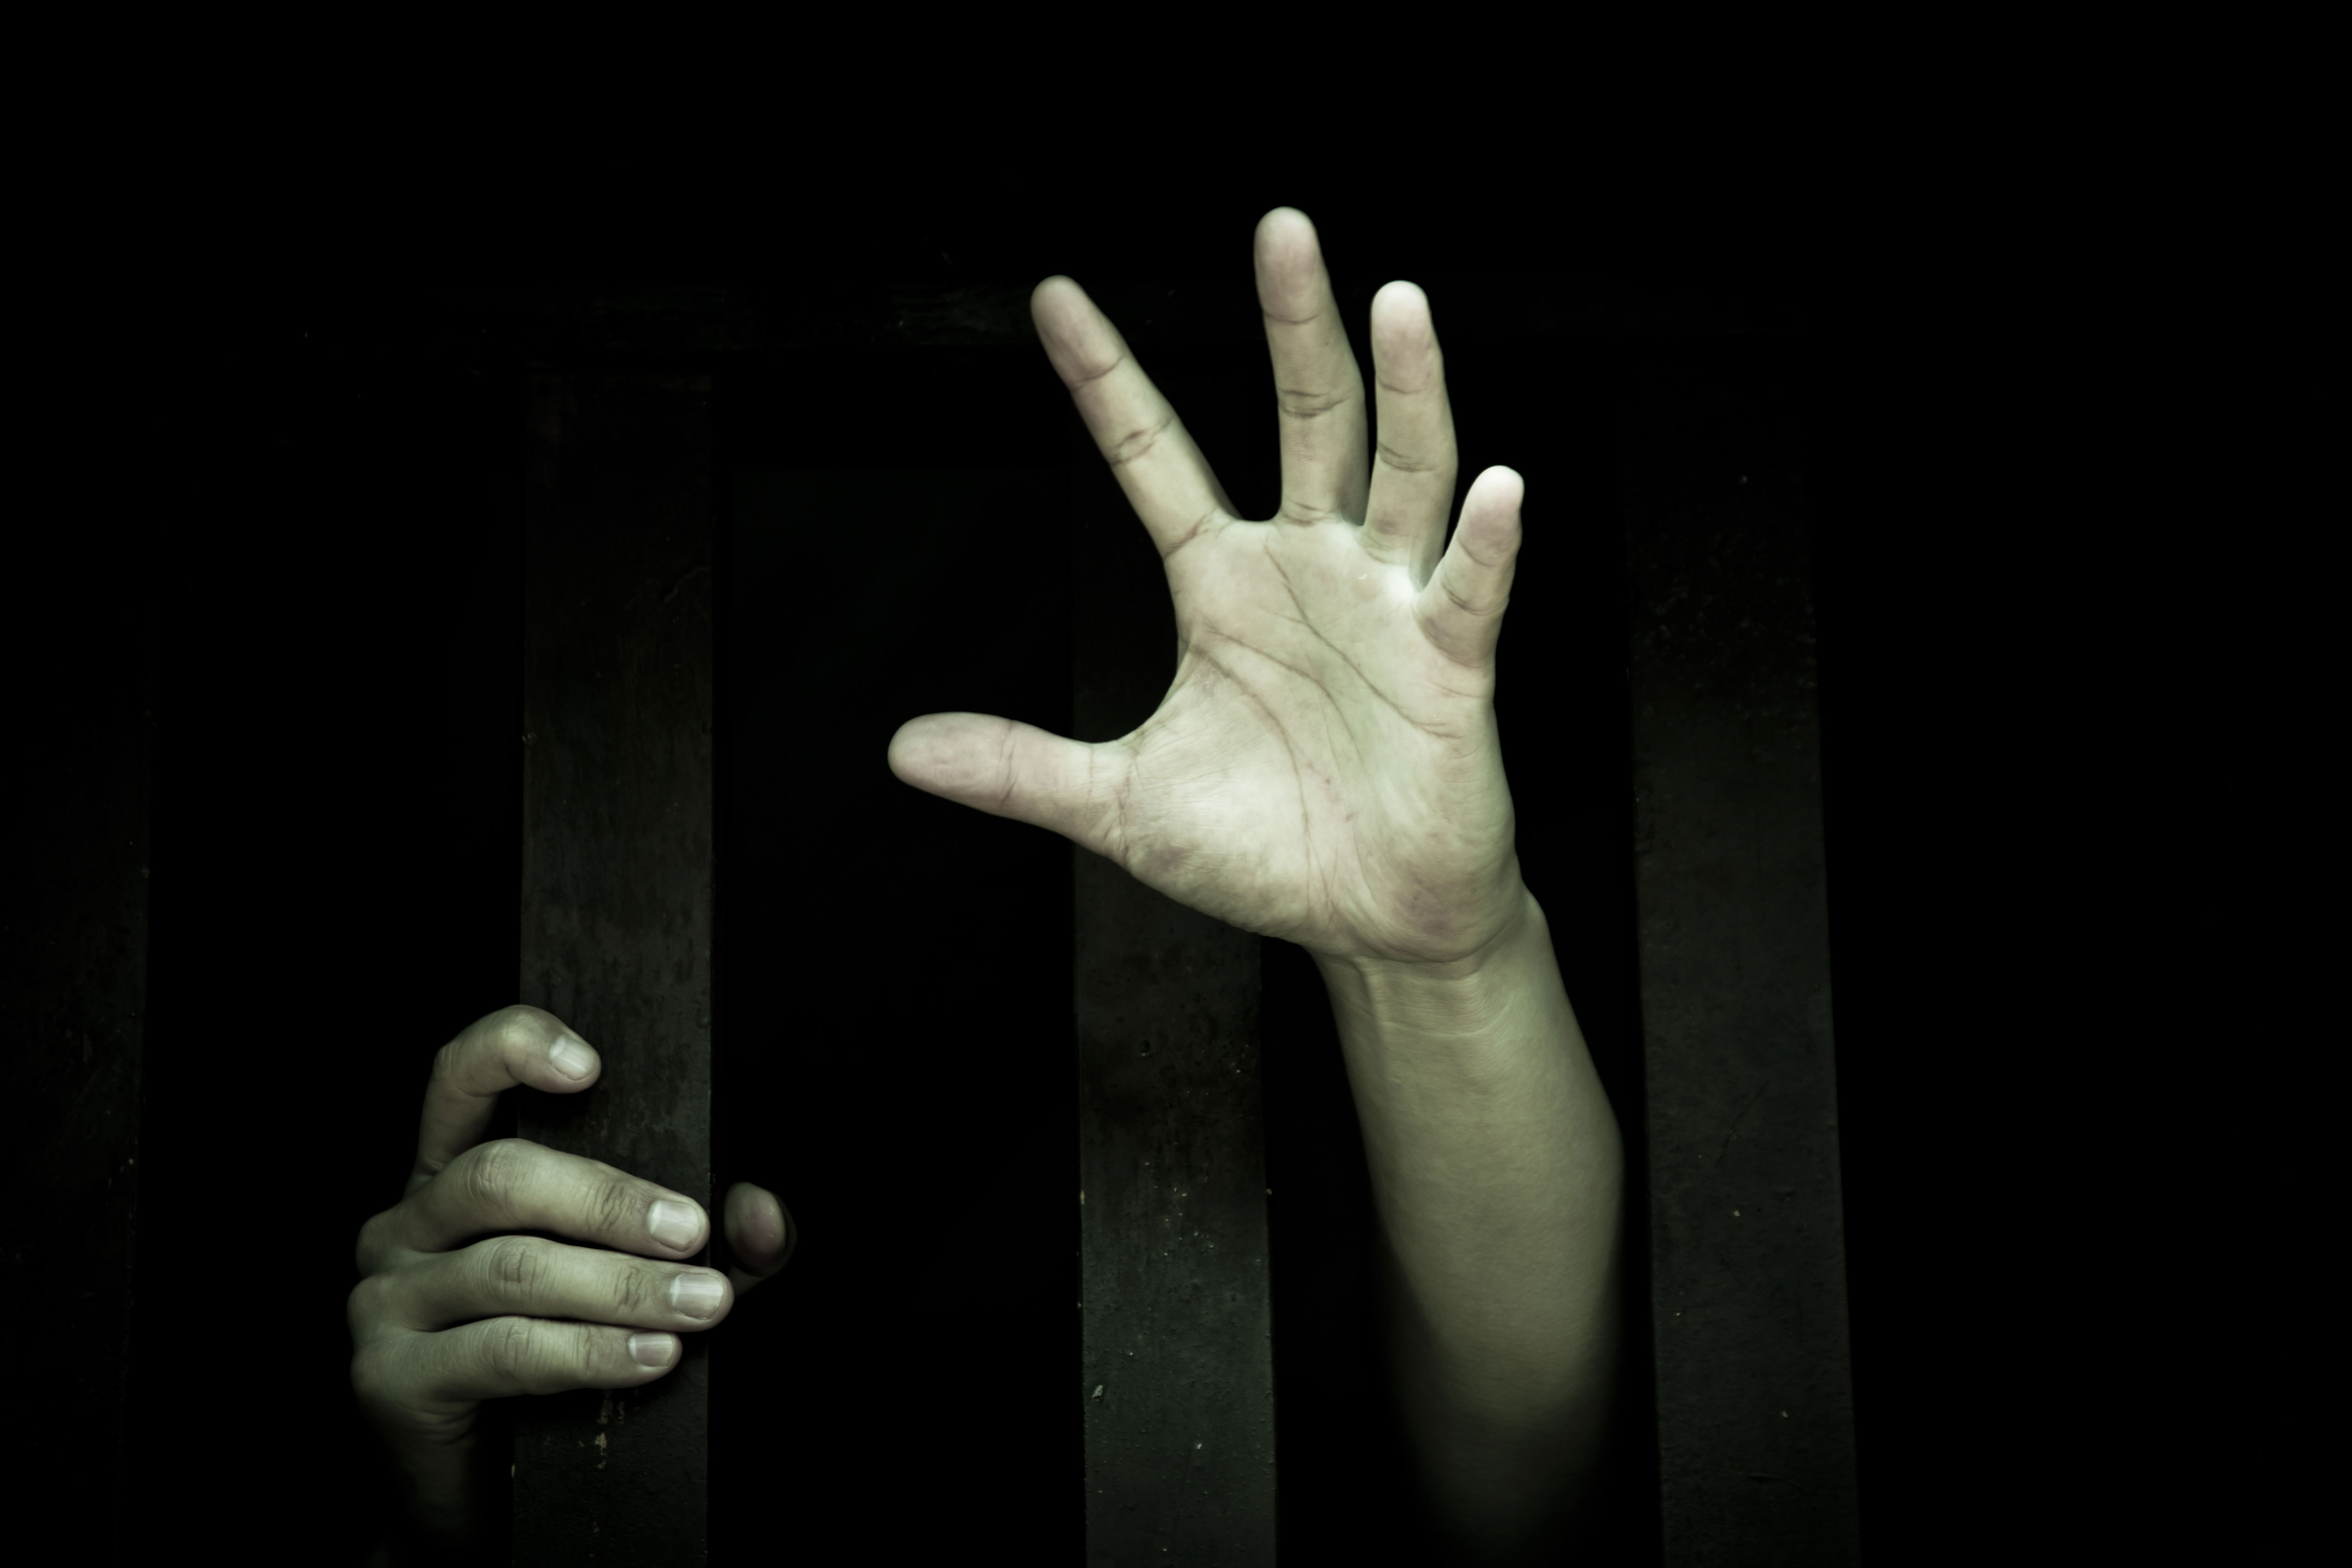 prison-initiatives_Humanity-Healing_bigstock-Let-me-out-30425915